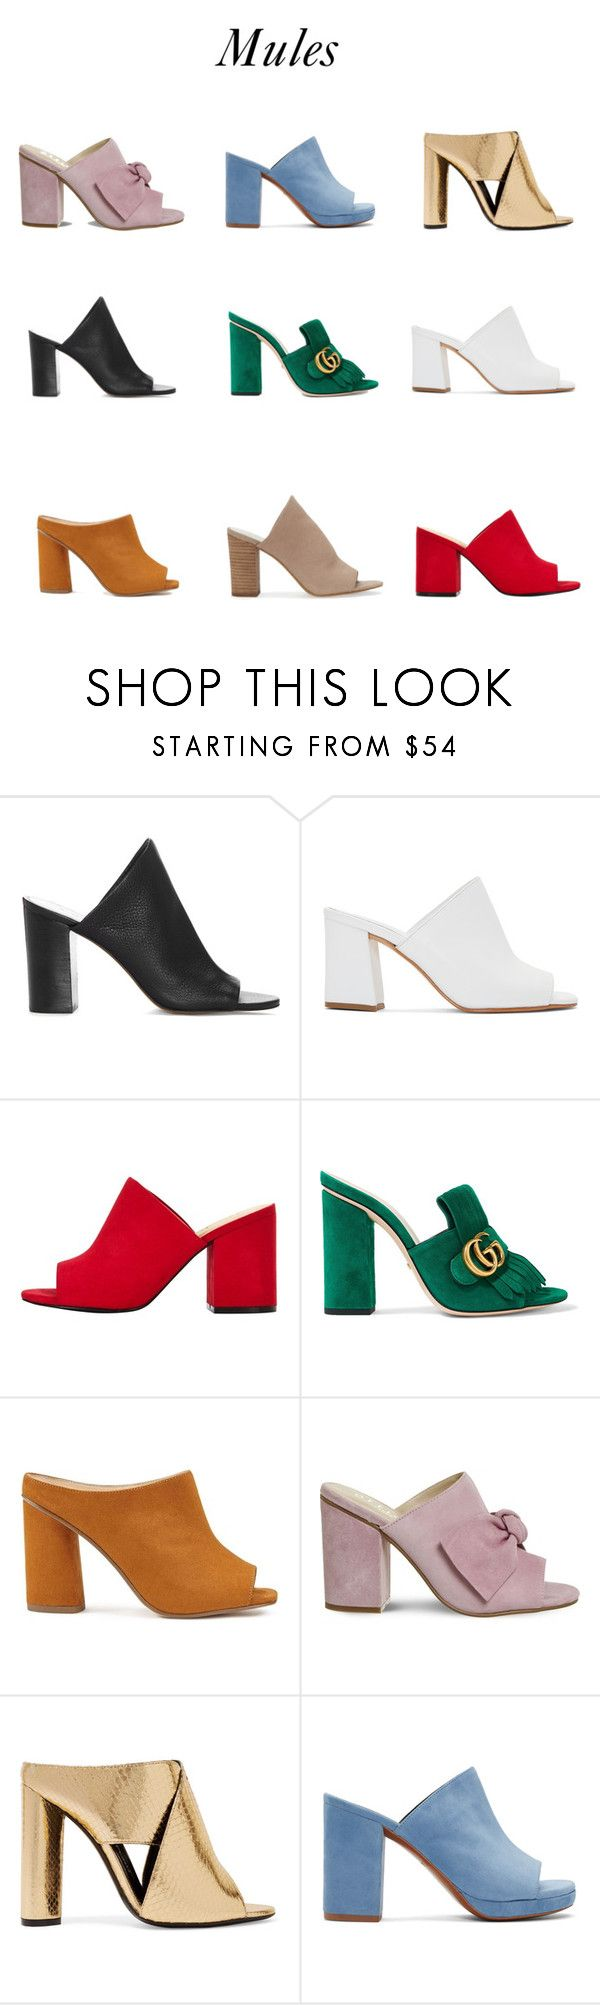 """""""Mules"""" by yourstylemood ❤ liked on Polyvore featuring 1.State, Maryam Nassir Zadeh, Gucci, Miss Selfridge, Tom Ford and Robert Clergerie"""